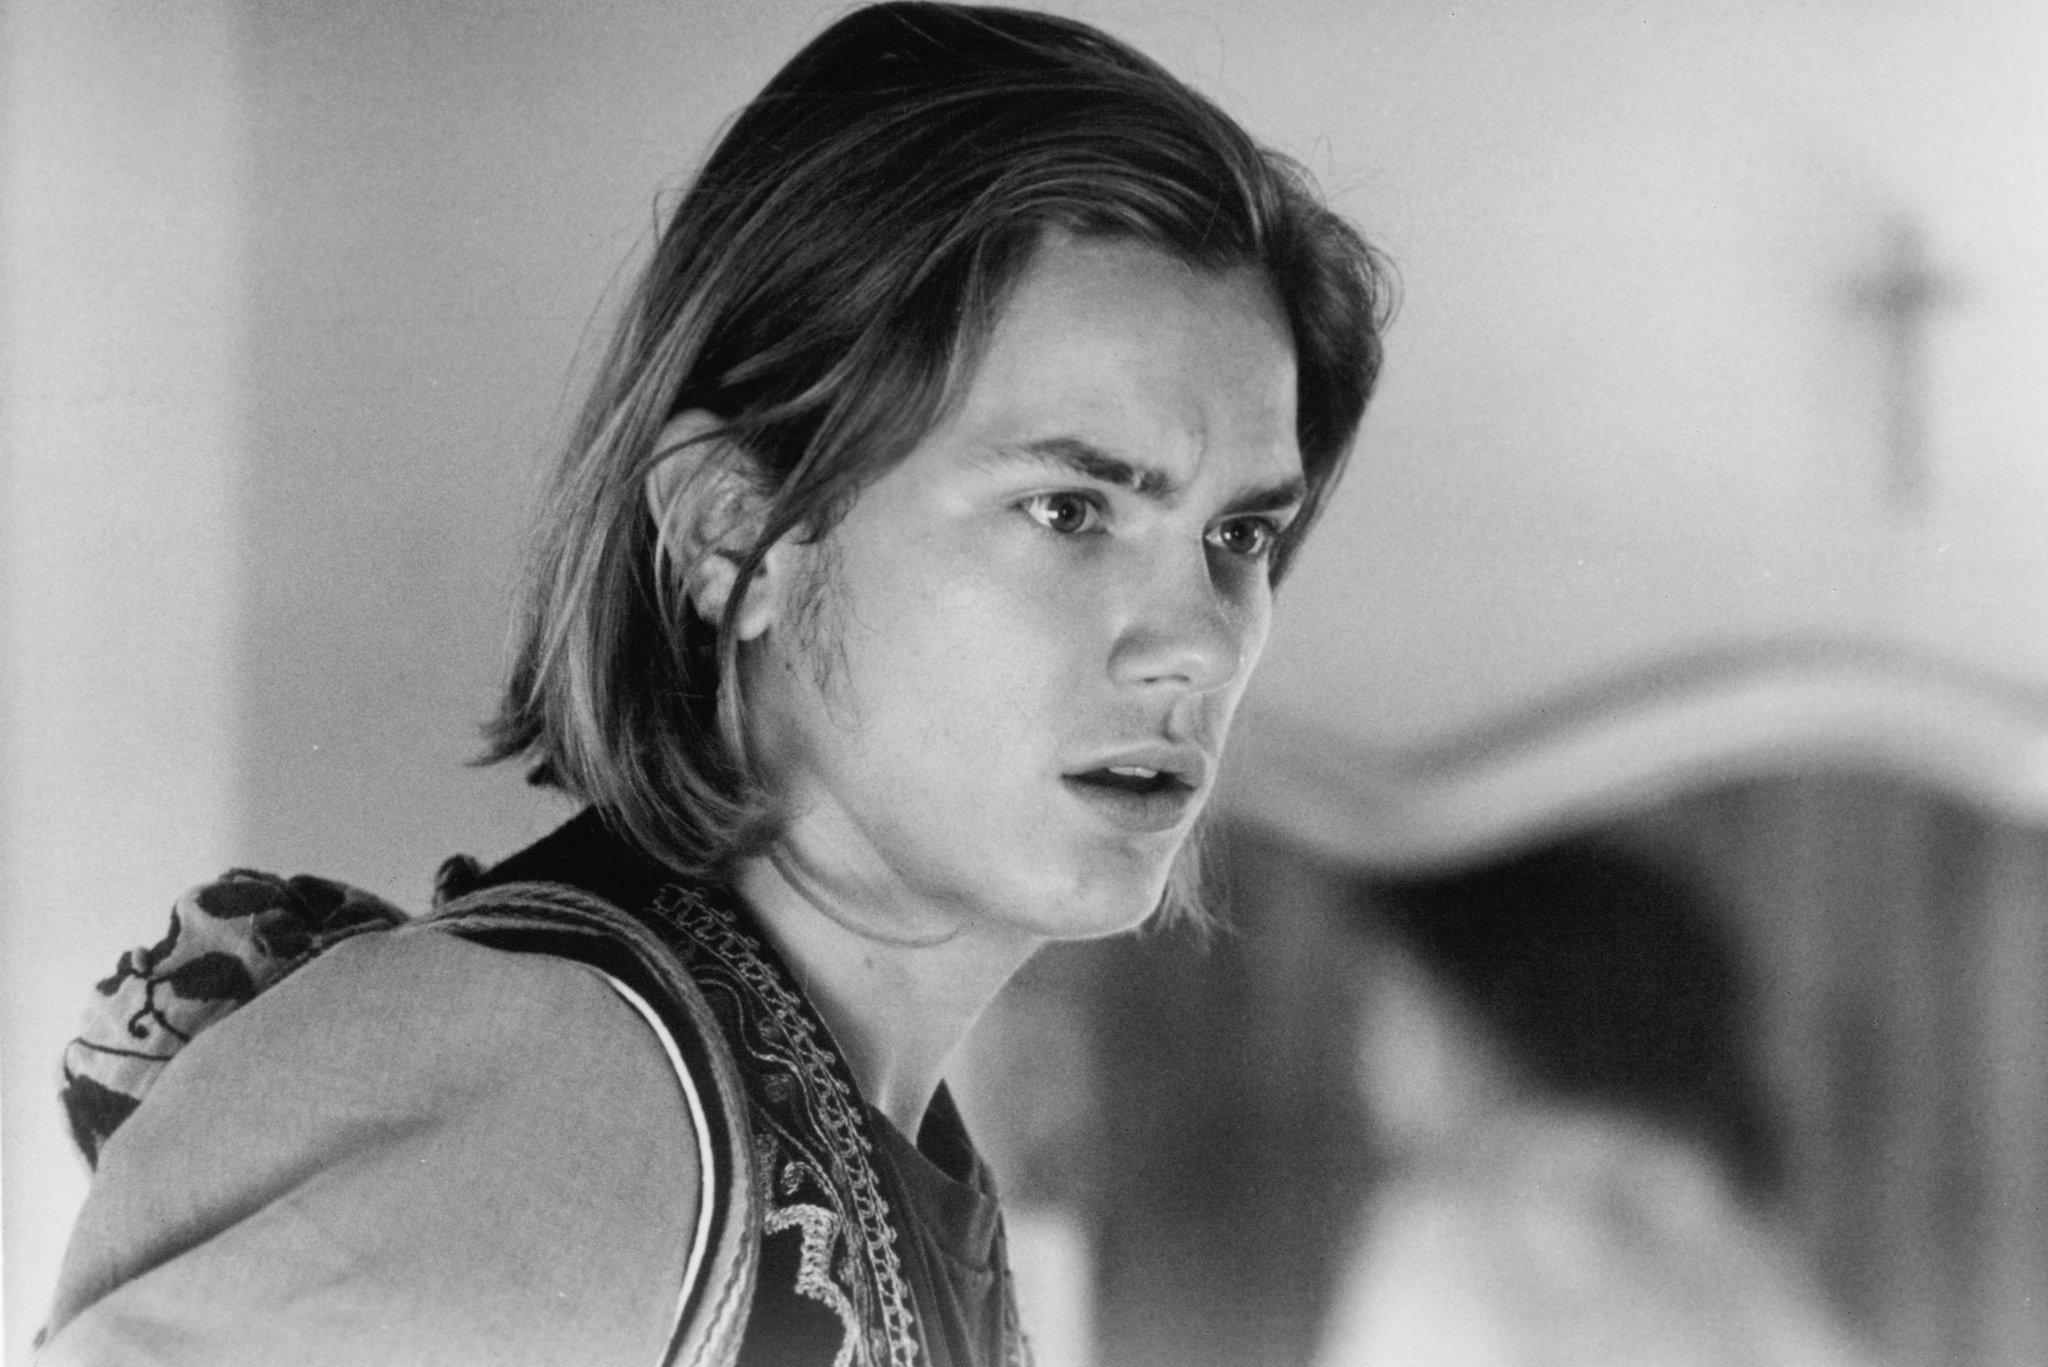 river phoenix and leonardo dicaprioriver phoenix 1993, river phoenix википедия, river phoenix gif, river phoenix and martha plimpton, river phoenix hairstyle, river phoenix stand by me, river phoenix и киану ривз, river phoenix vk, river phoenix style, river phoenix фото, river phoenix natal chart, river phoenix movies, river phoenix height, river phoenix wallpaper, river phoenix and leonardo dicaprio, river phoenix undercut, river phoenix died, river phoenix 1987, river phoenix 1988 interview, river phoenix young